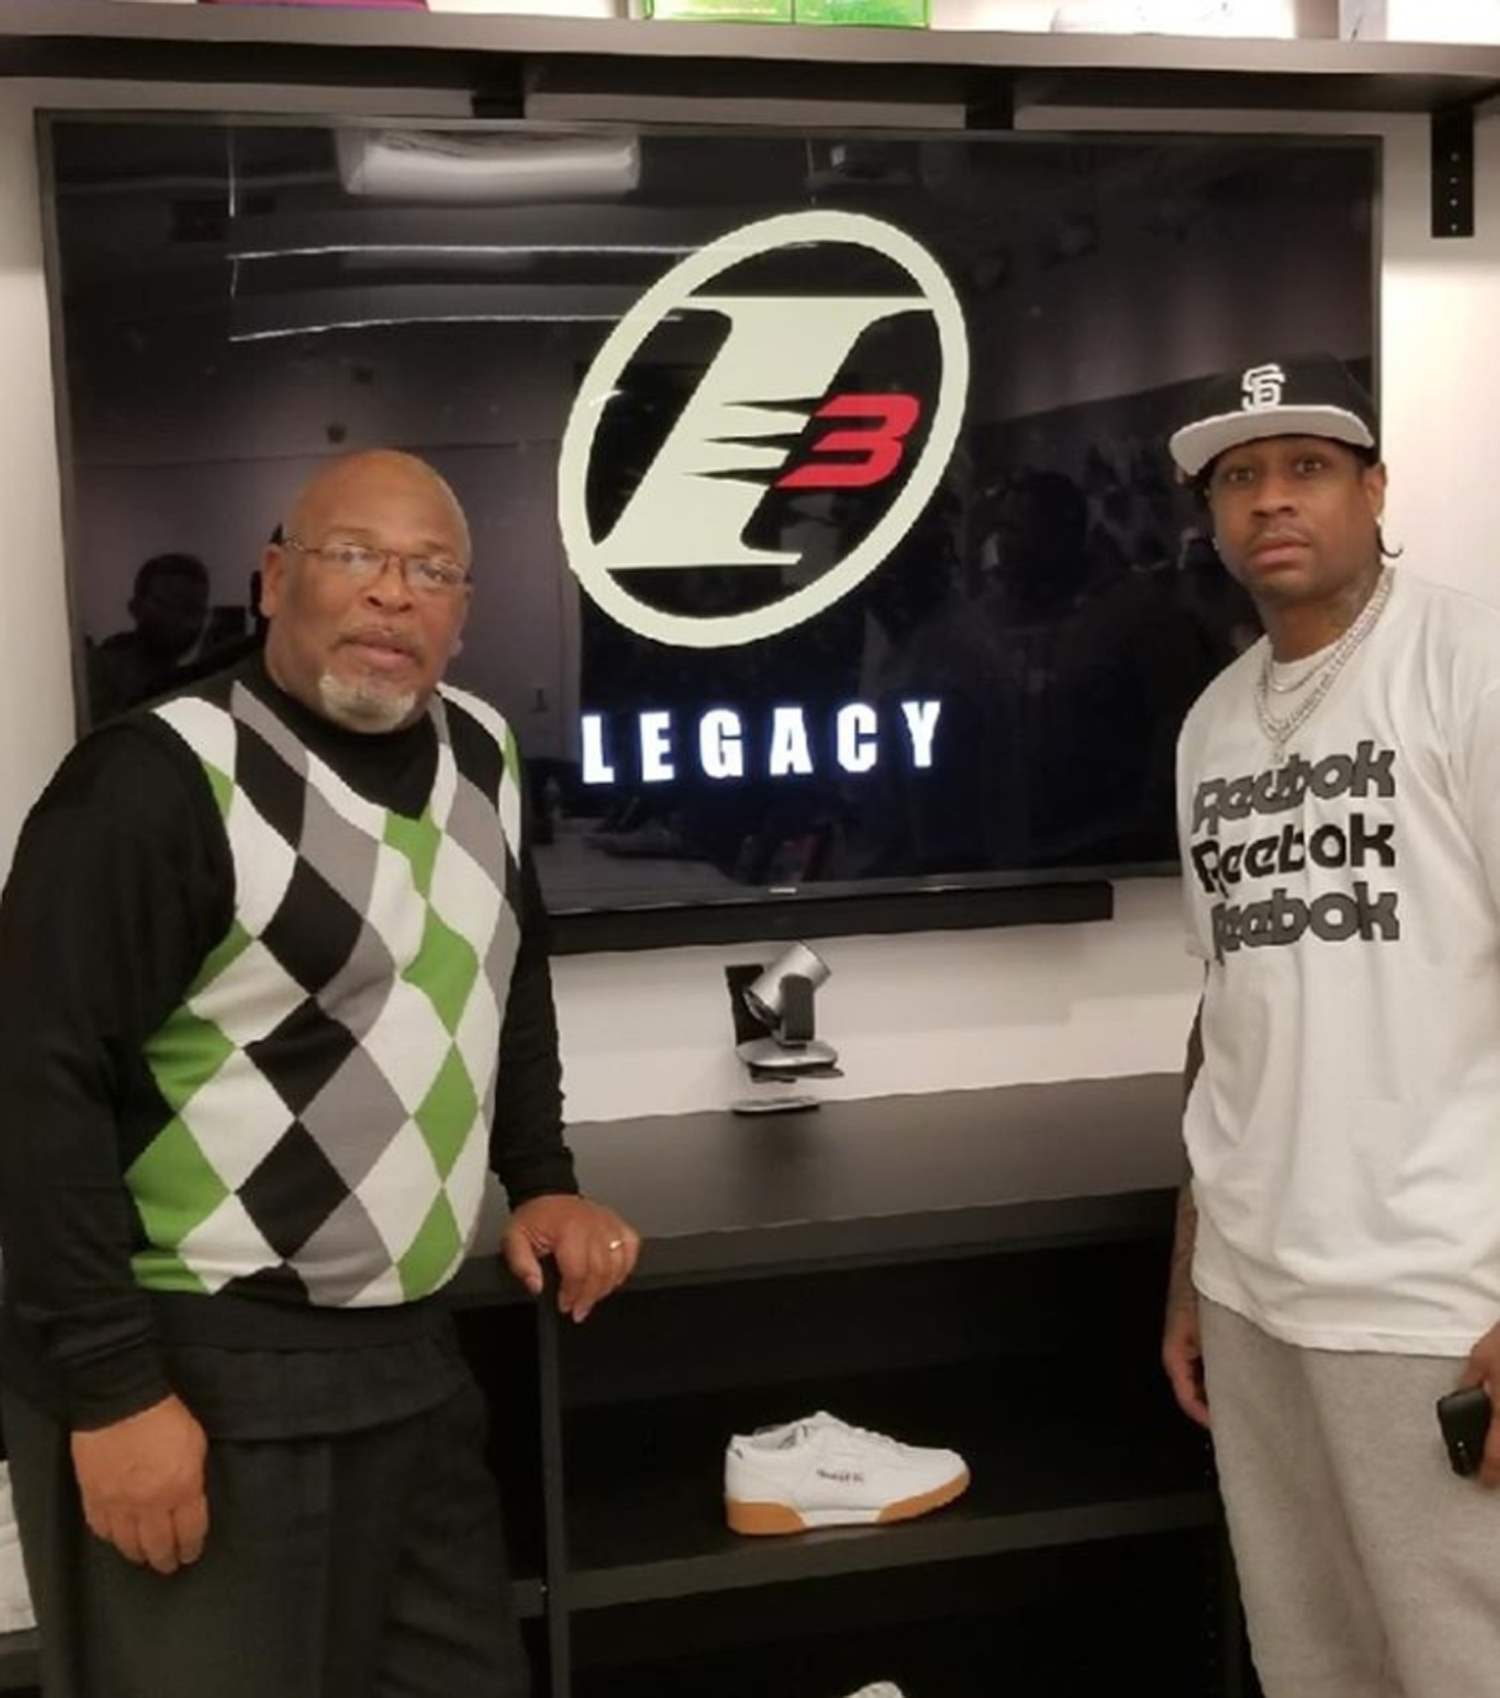 Reebok Announce I3 Legacy Collection